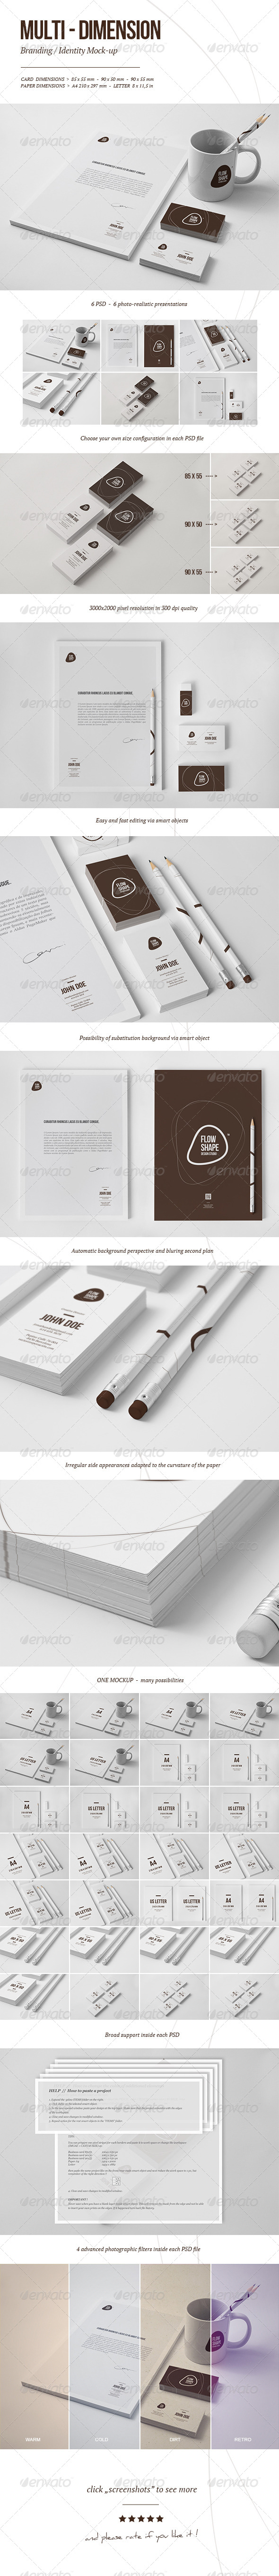 Multi-dimension Branding / Identity Mock-up IV - Stationery Print